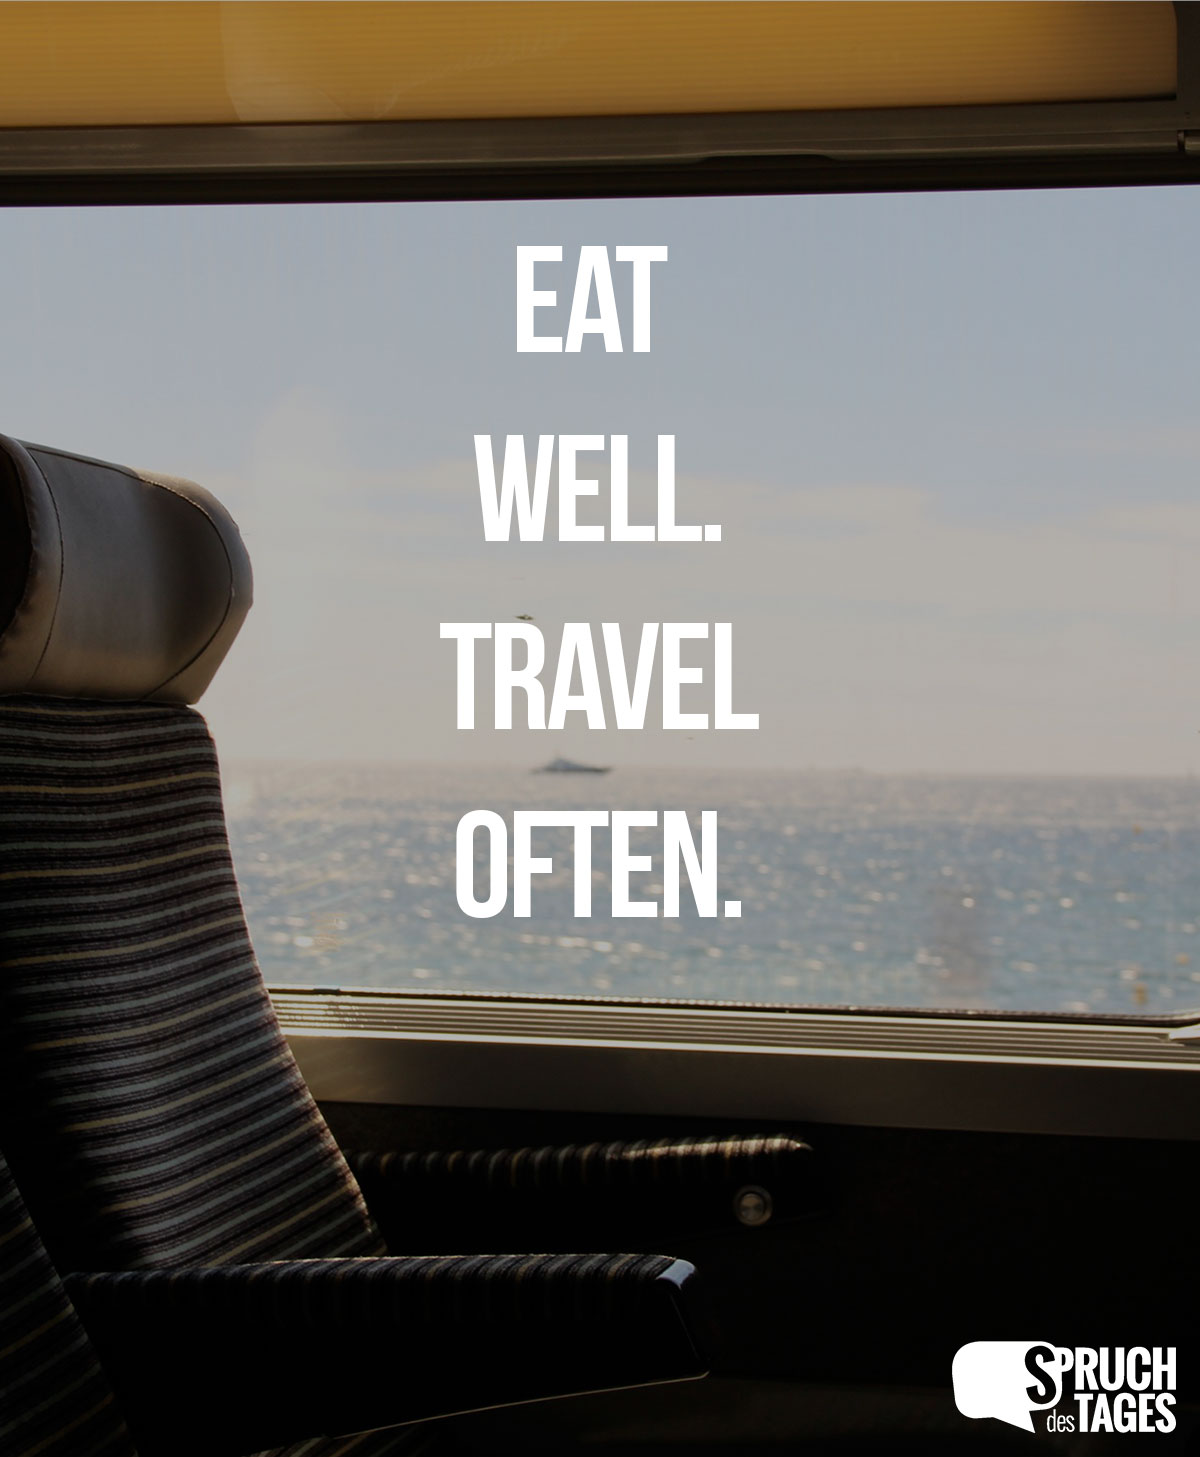 Eat well. Travel often.